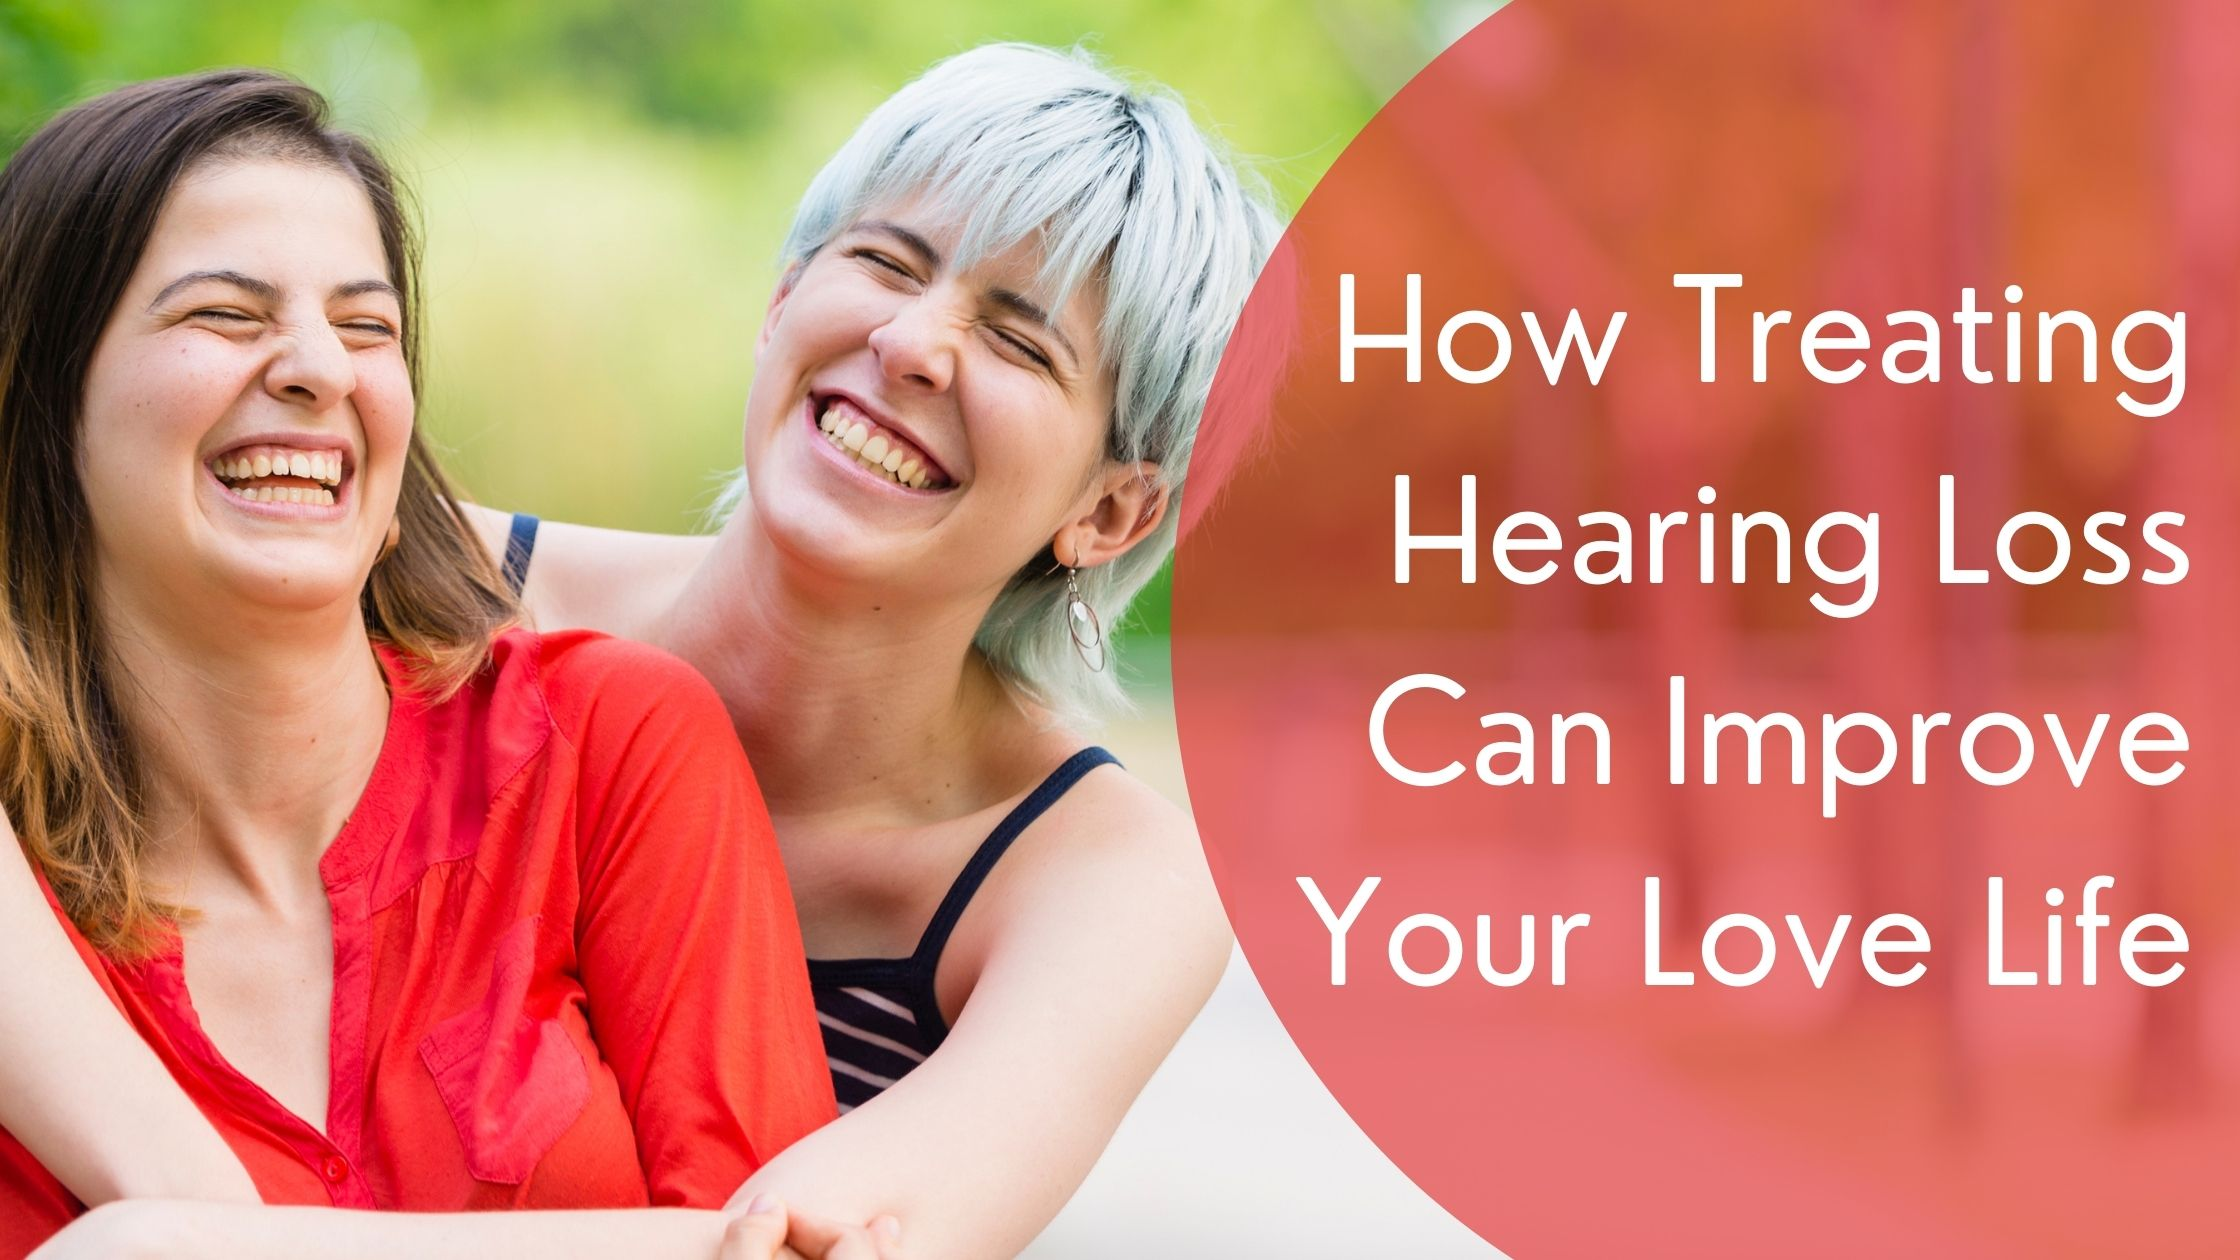 How Treating Hearing Loss Can Improve Your Love Life